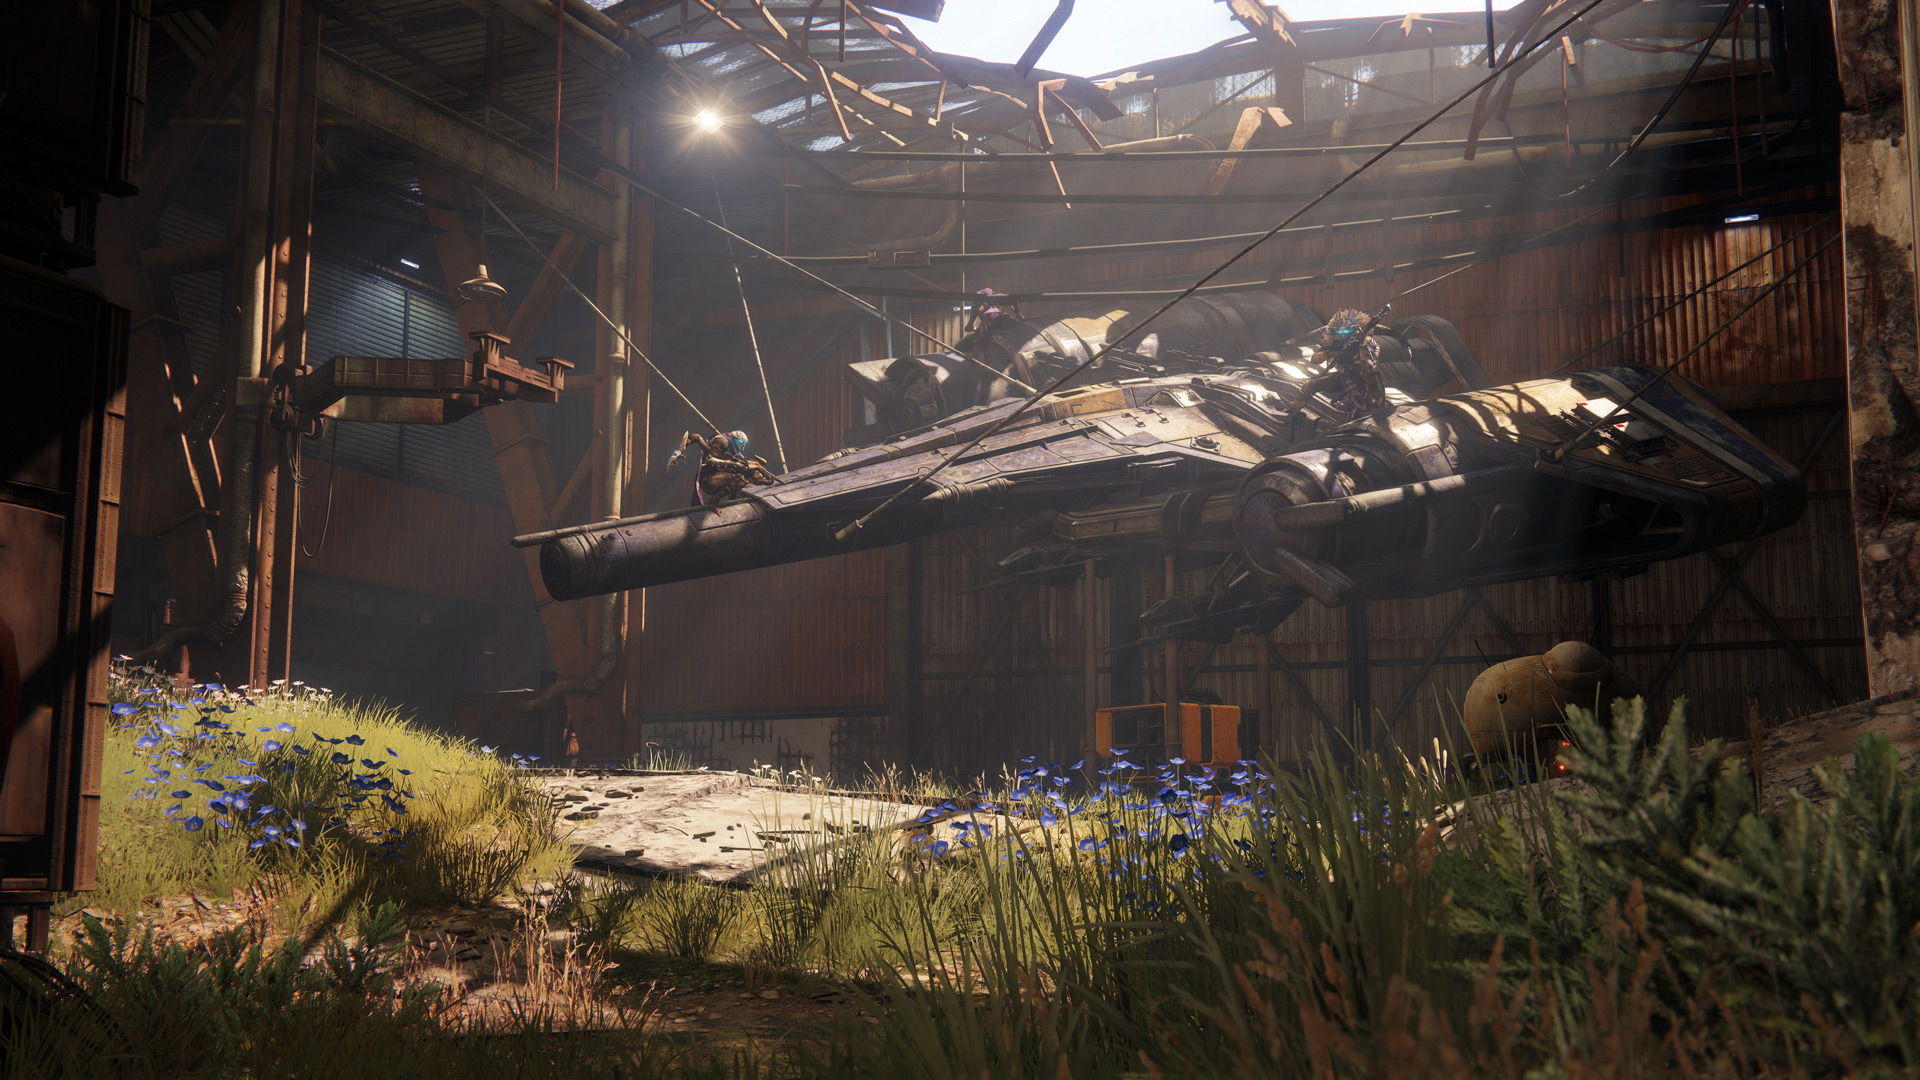 destiny 2 ships ghosts and sparrows